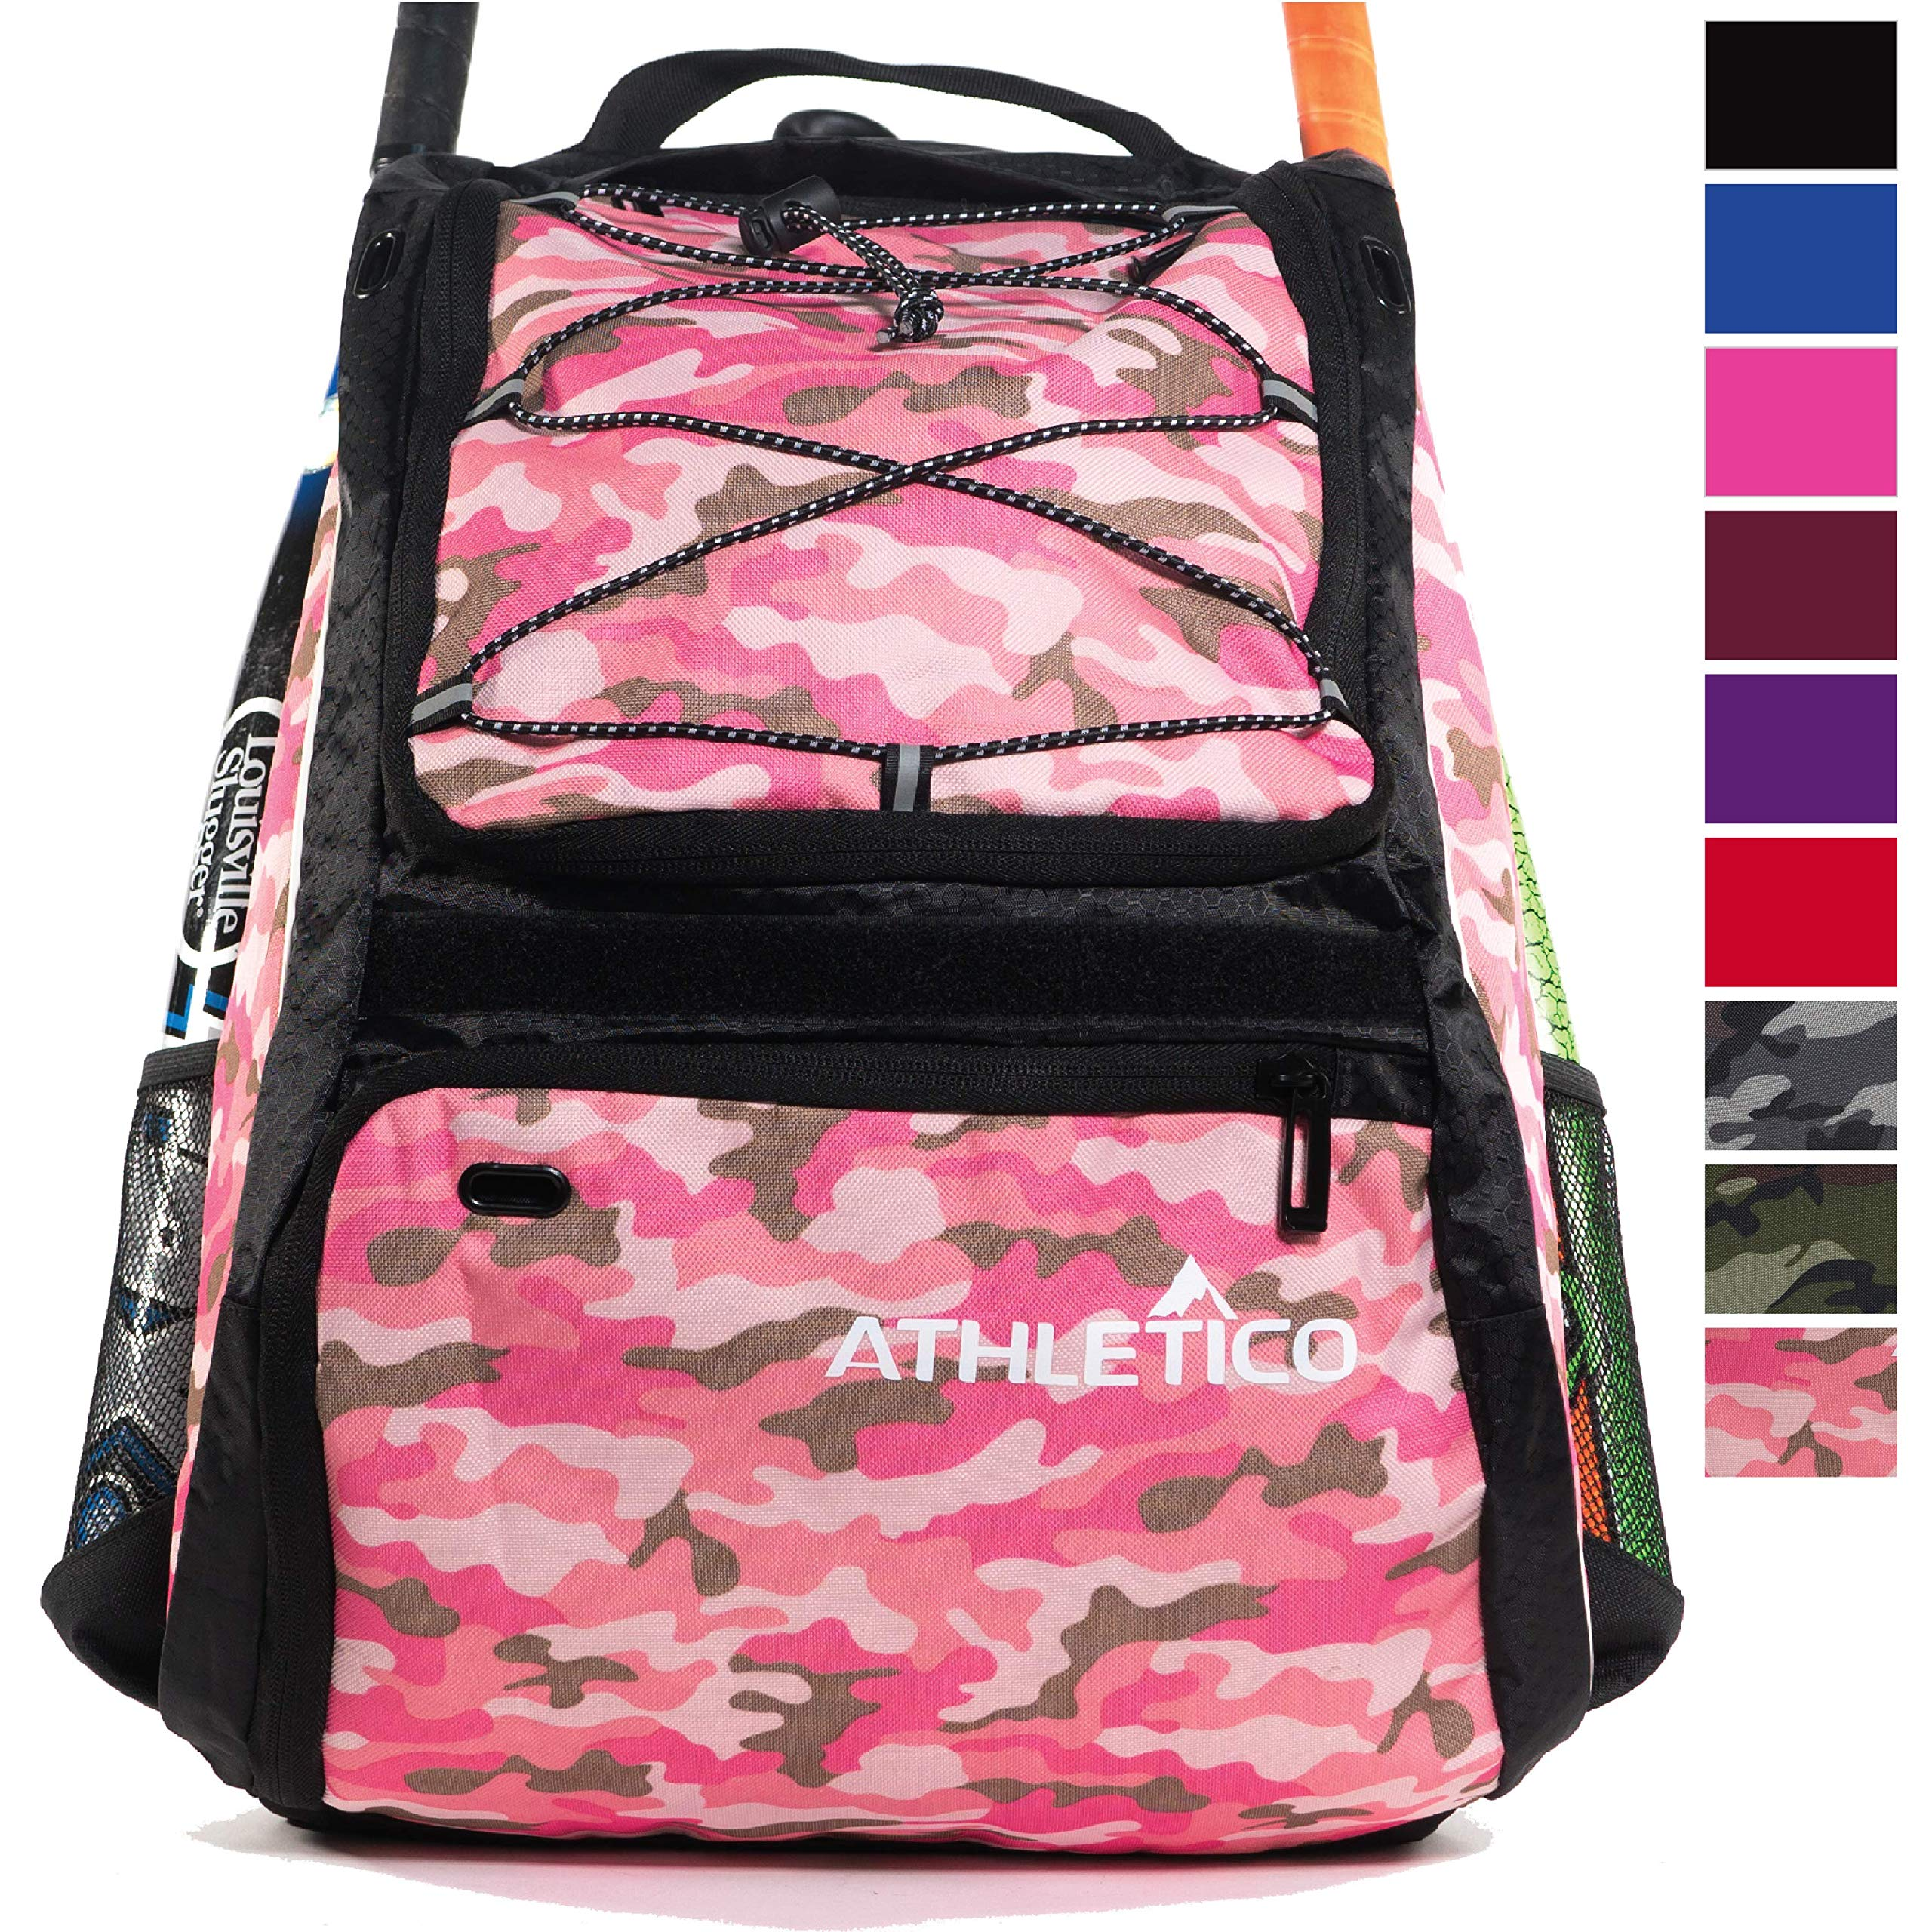 Athletico Baseball Bat Bag - Backpack for Baseball, T-Ball & Softball Equipment & Gear for Youth and Adults | Holds Bat, Helmet, Glove, Shoes |Shoe Compartment & Fence Hook (Pink Camo) by Athletico